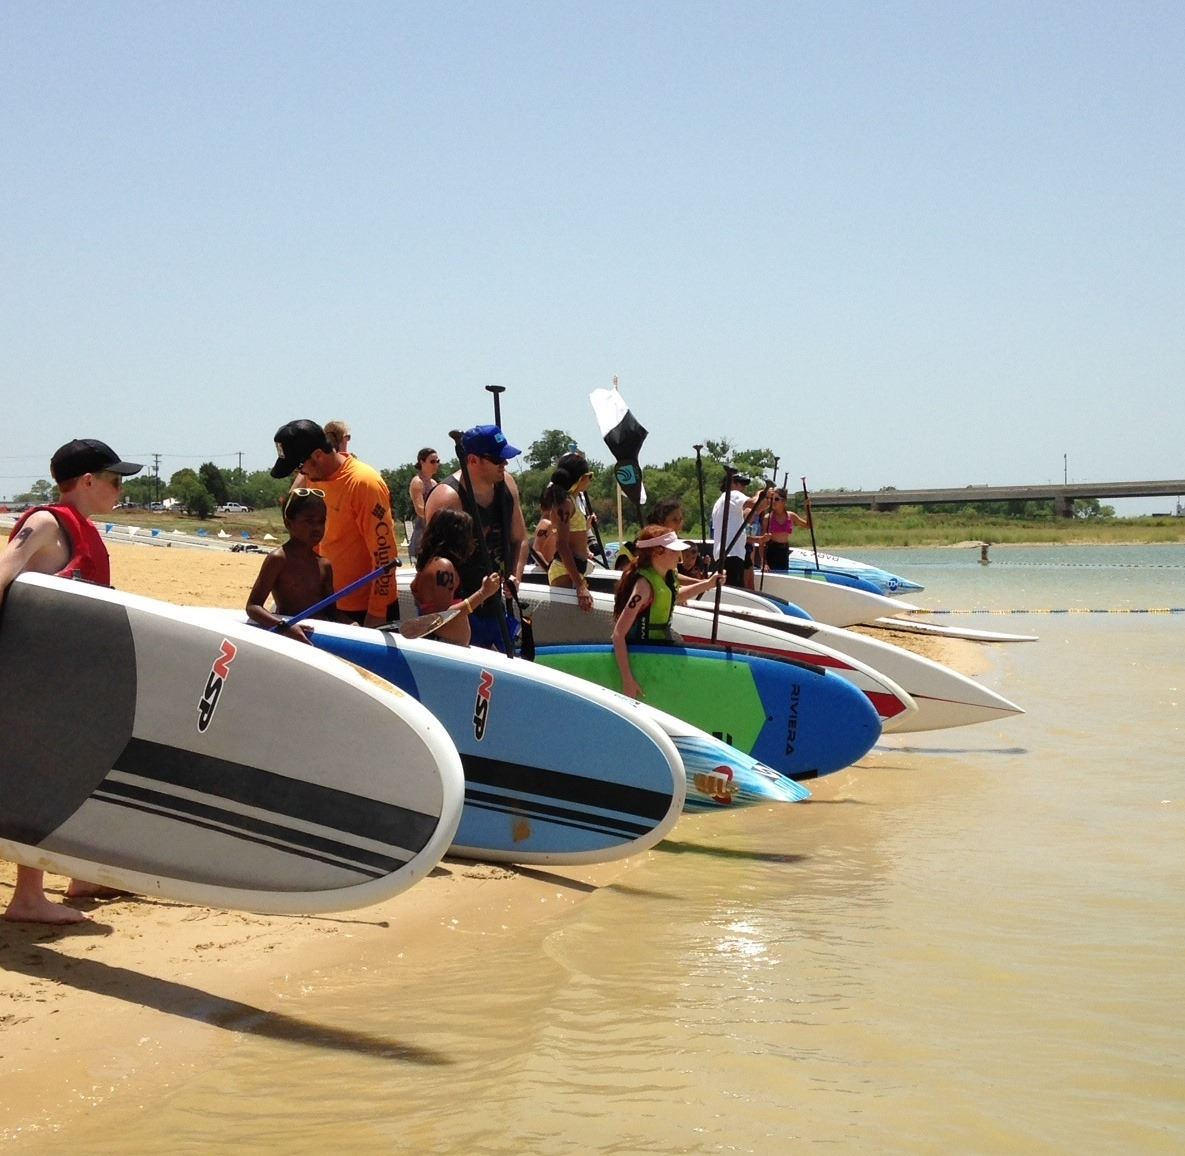 People lined up on the beach with their paddle boards